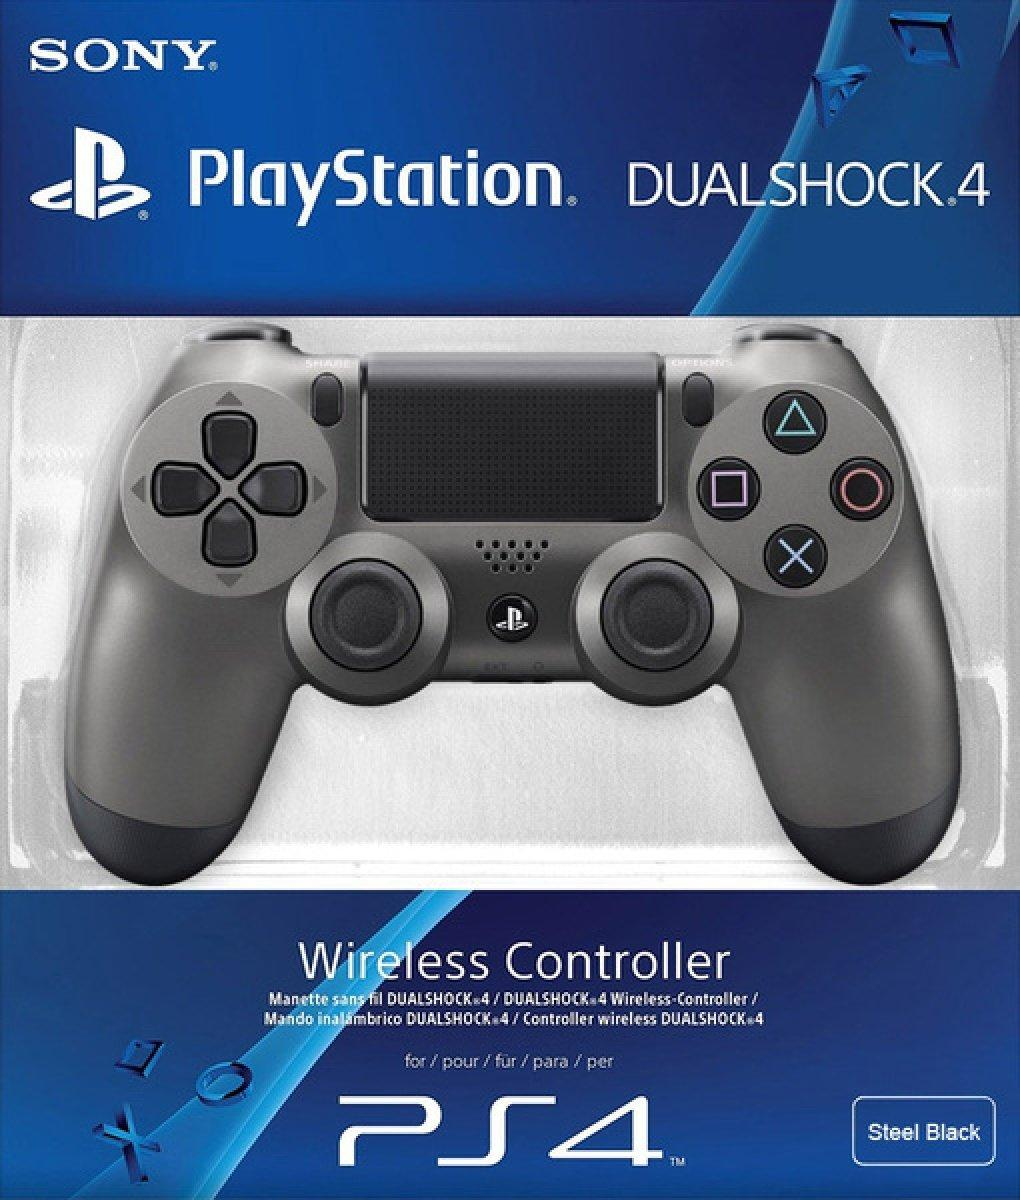 Геймпад PS4 беспроводной DualShock 4 Wireless Controller (Steel Black) (Реплика)